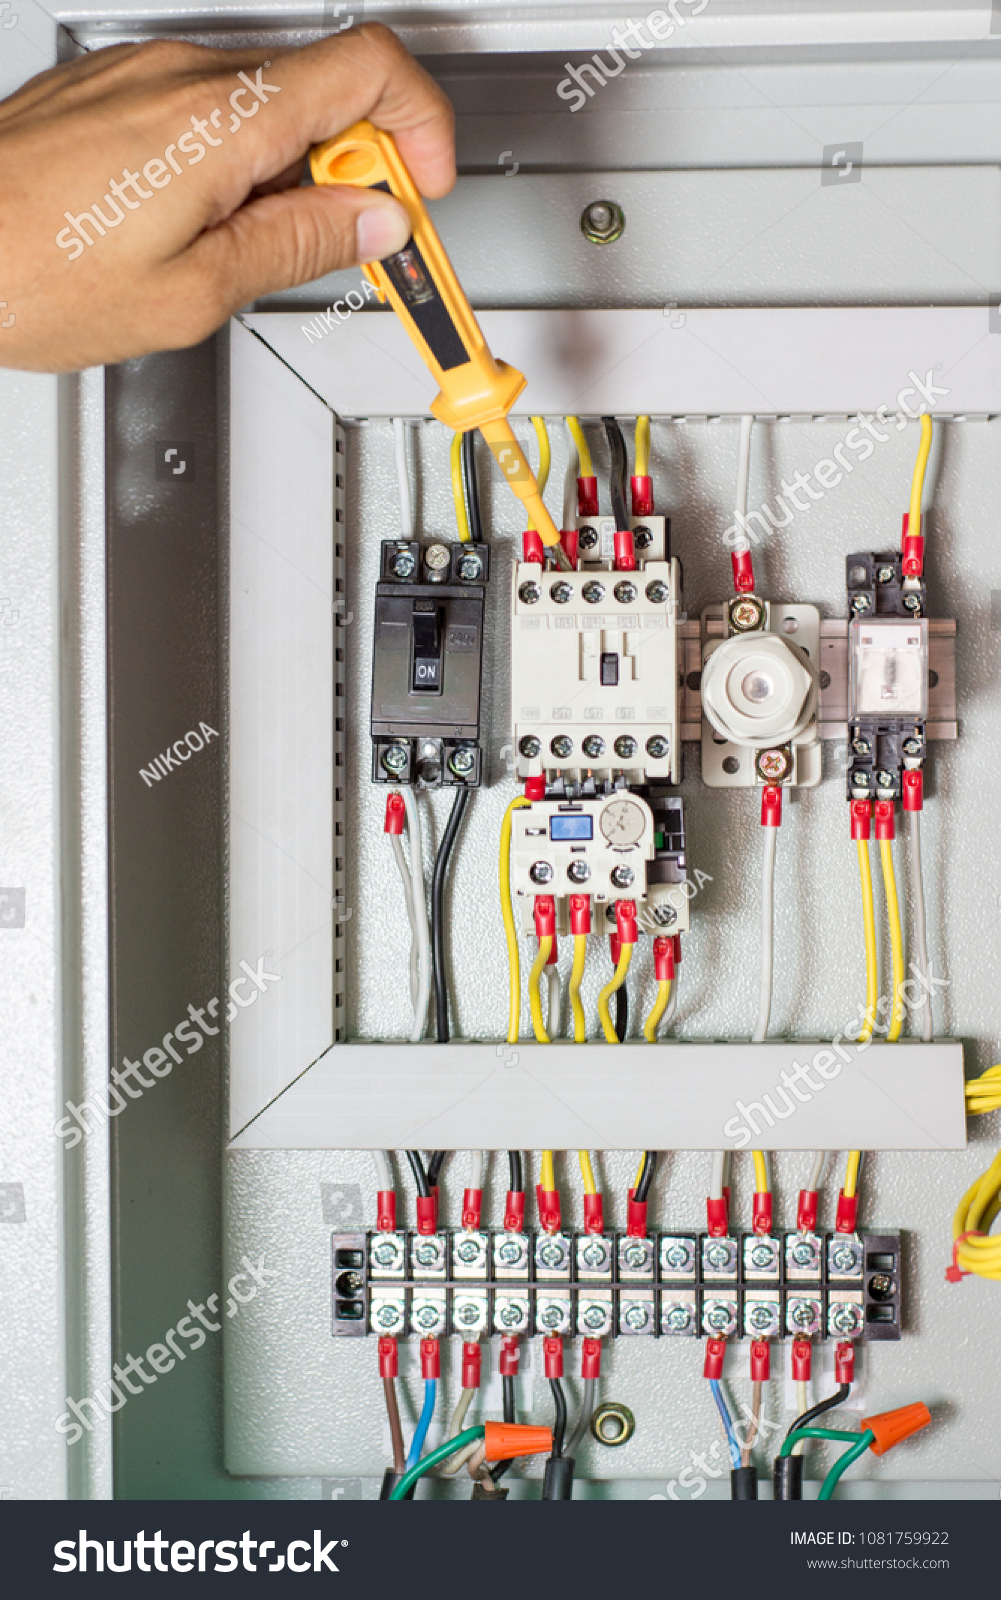 Electrician Checking Current Circuit Magnetic Contactor Stock Photo How To Test Electrical Circuits At In Control Terminal Box With Screwdriver Lamp